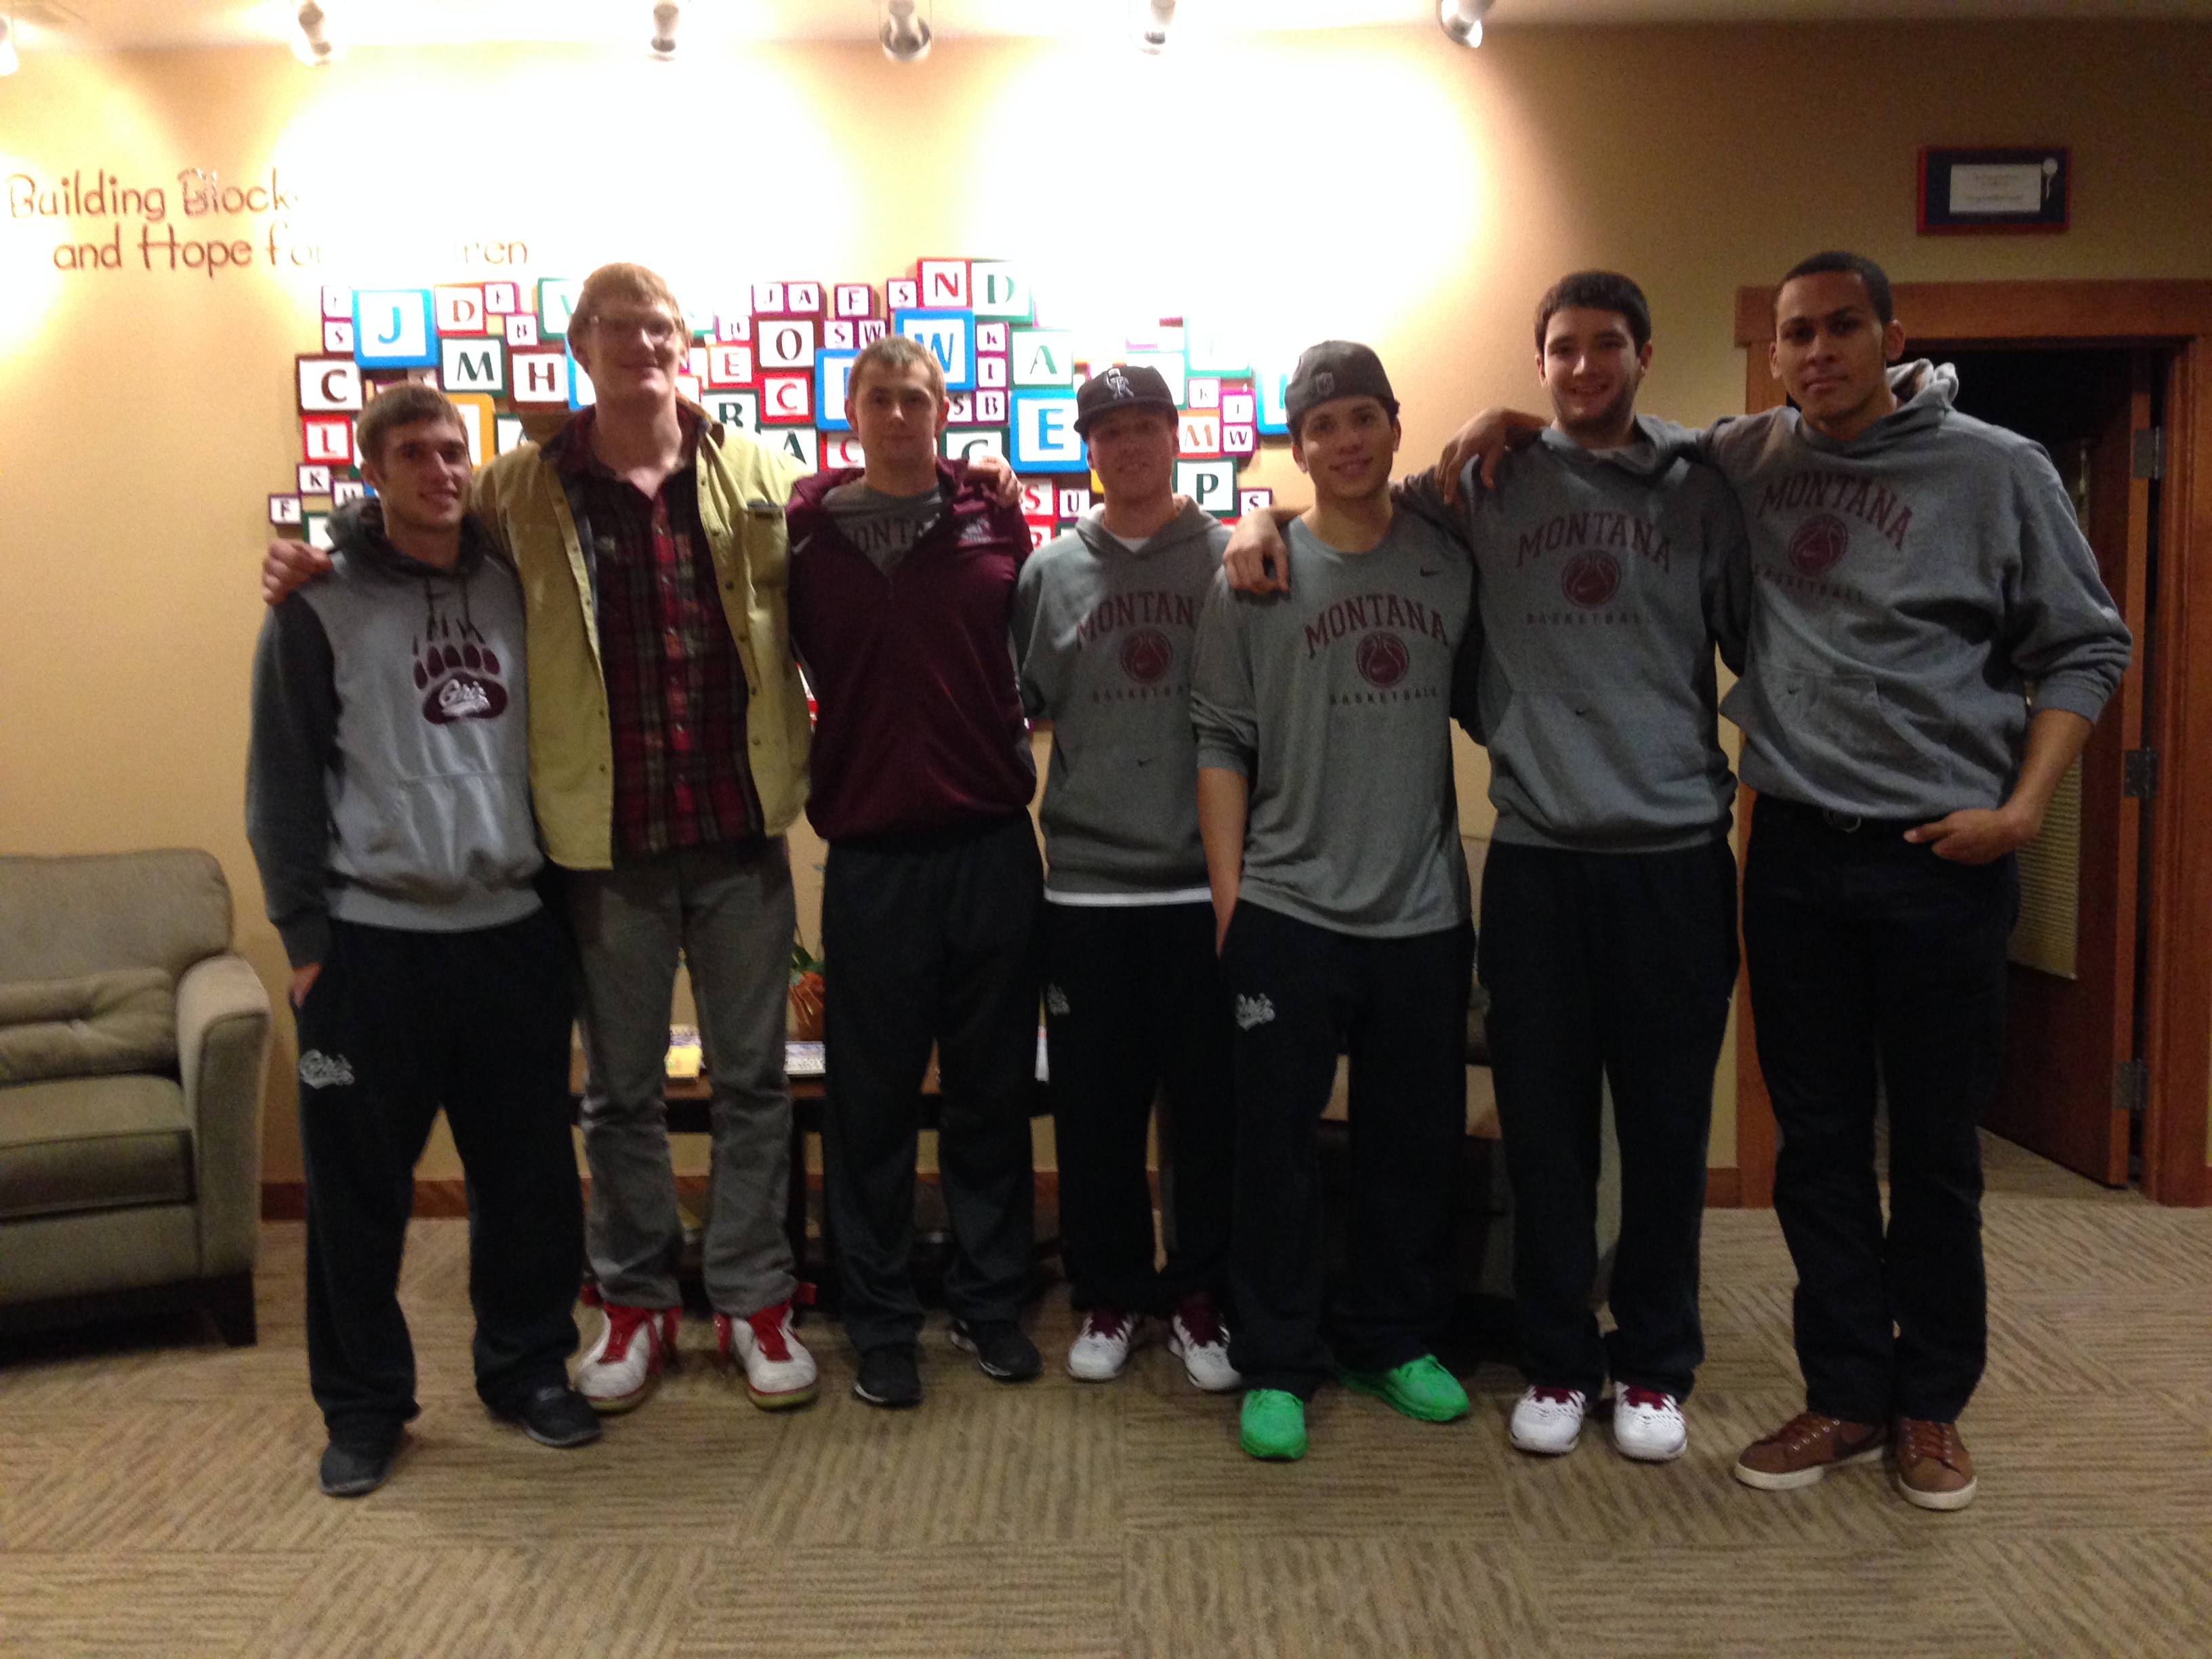 Members of the Griz basketball team who volunteered at the Watson Children's Center tonight.